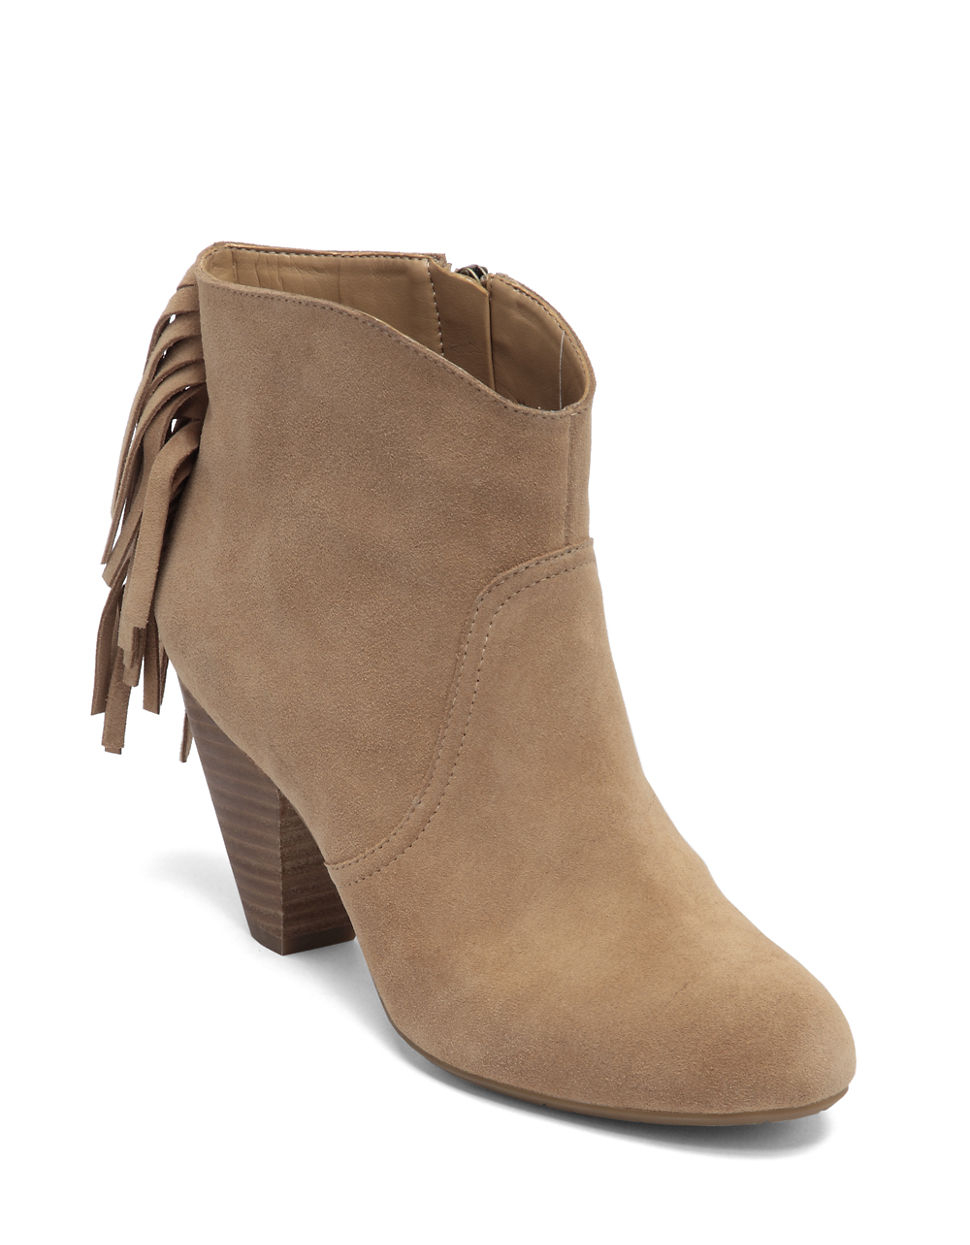 octave 2 suede leather ankle boots in